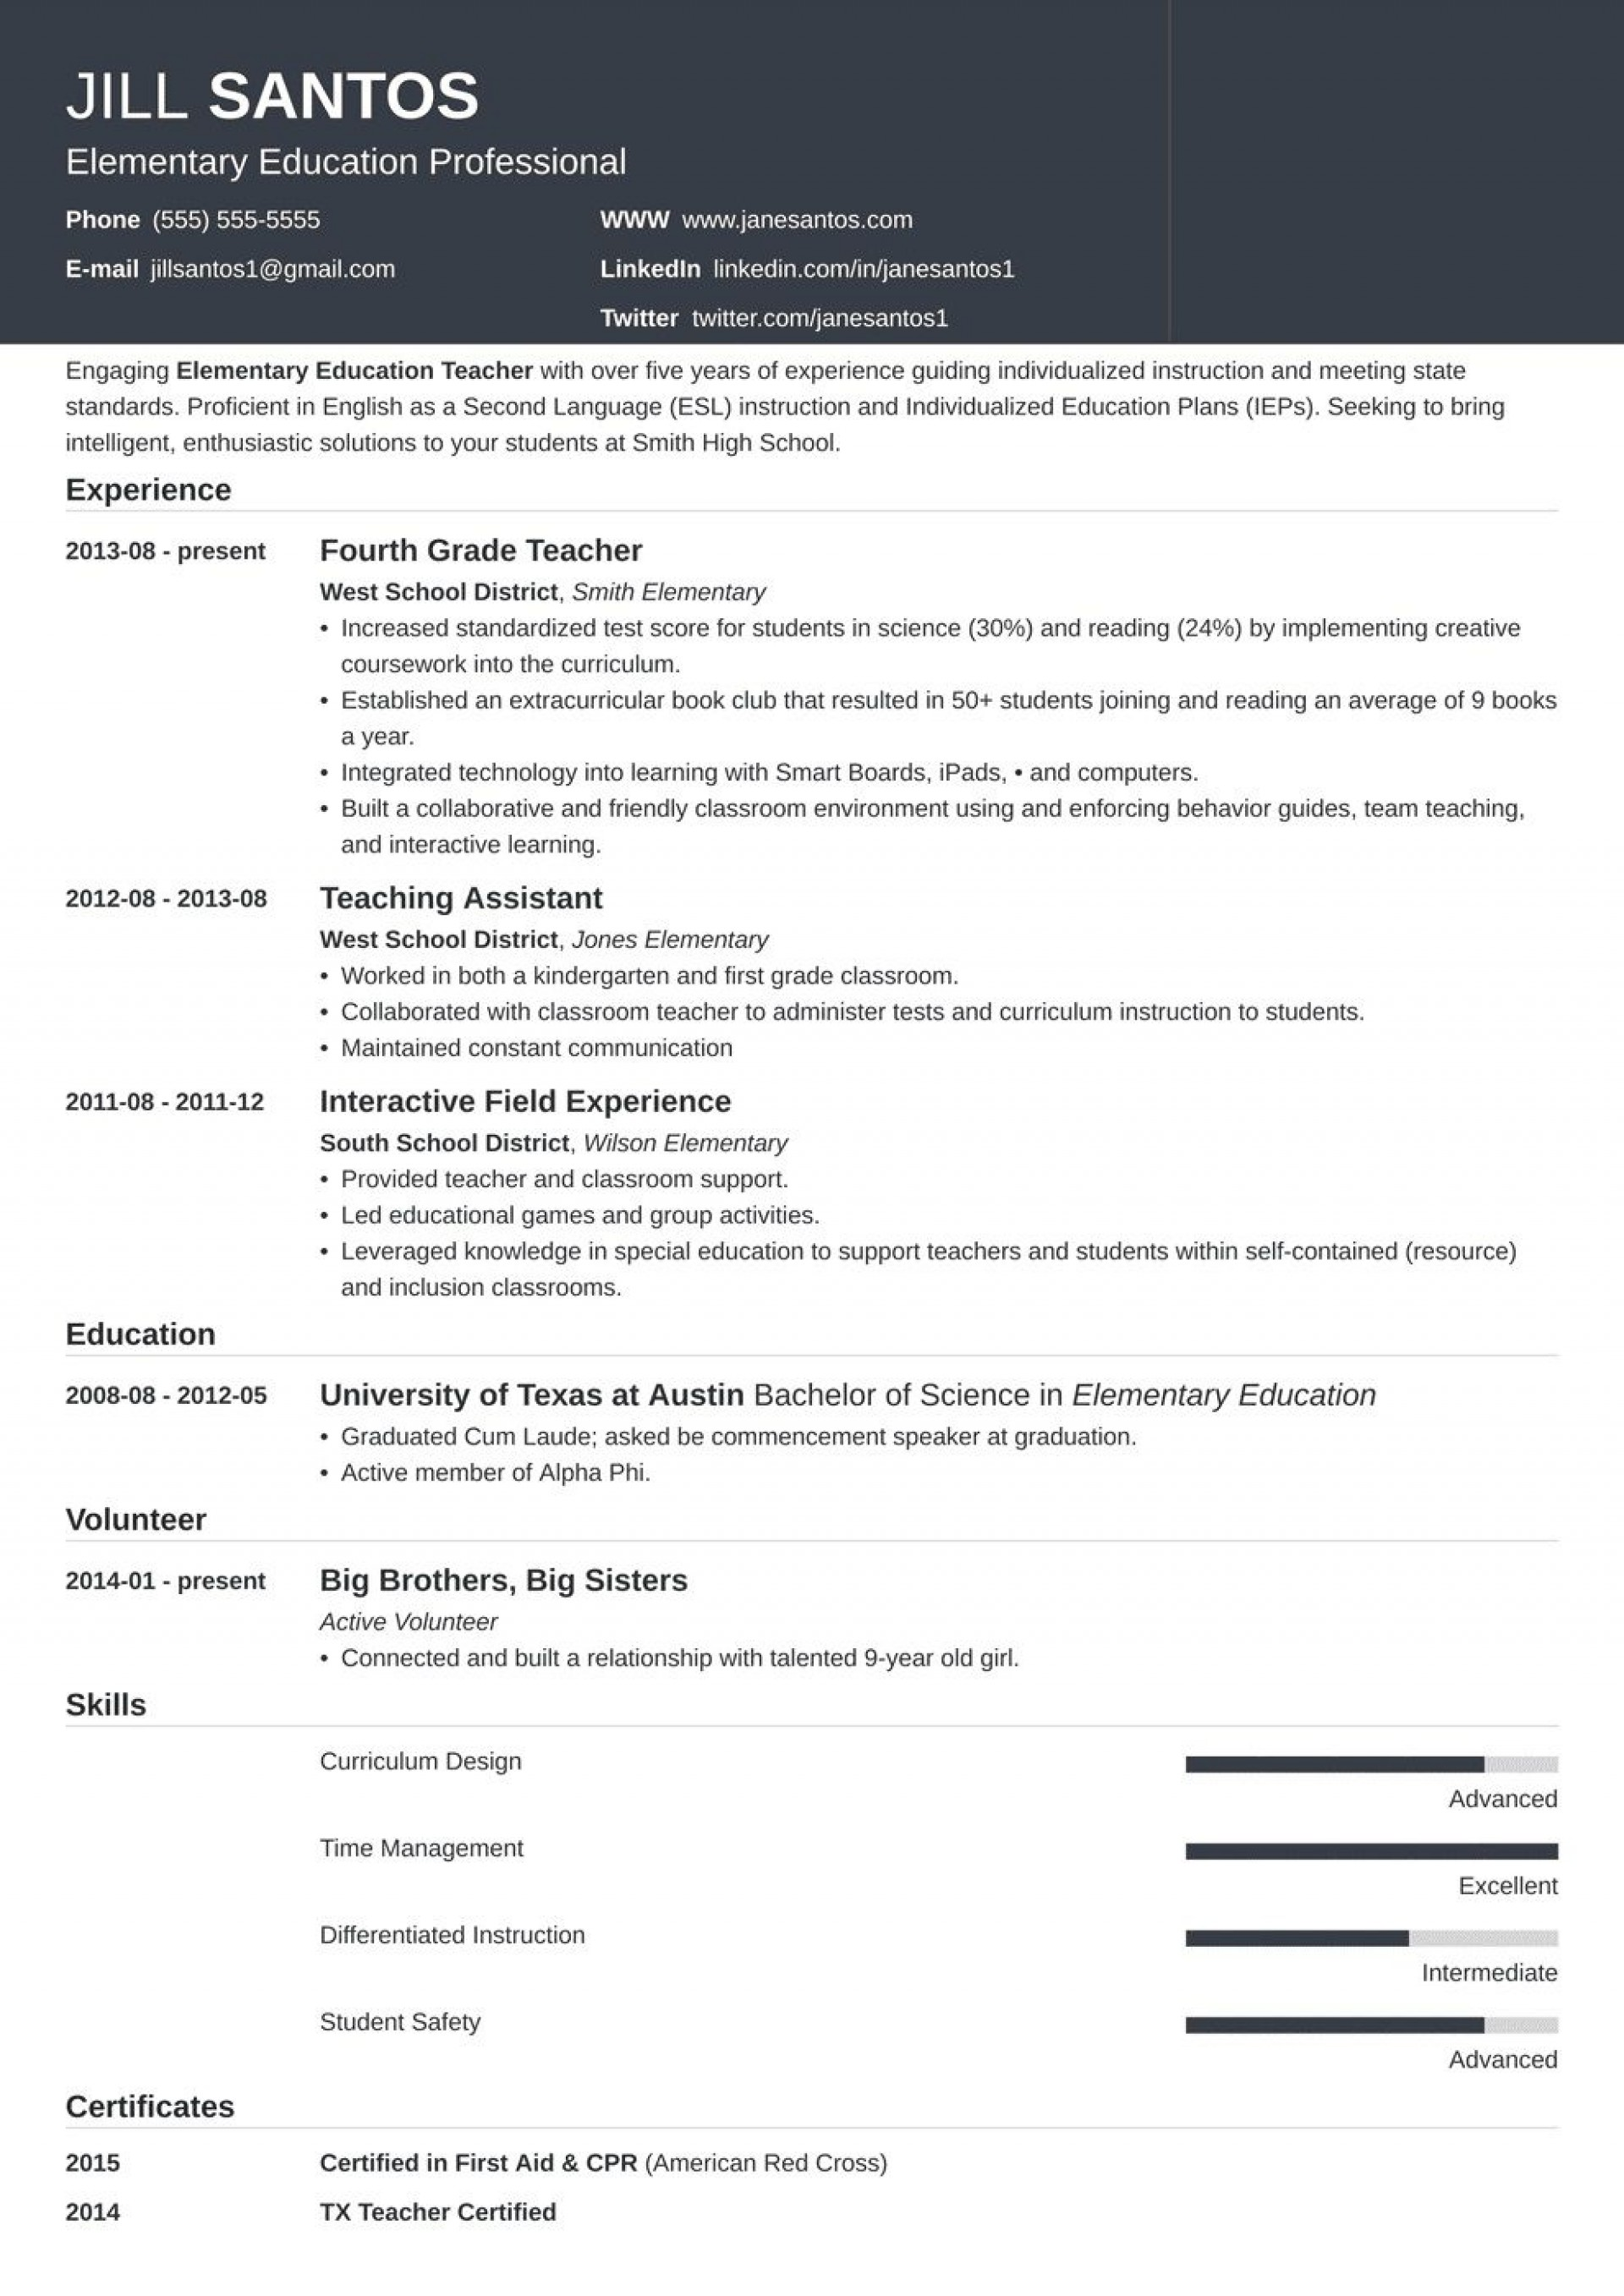 004 Archaicawful Resume Template For Teacher Highest Clarity  Australia Microsoft Word Sample1920